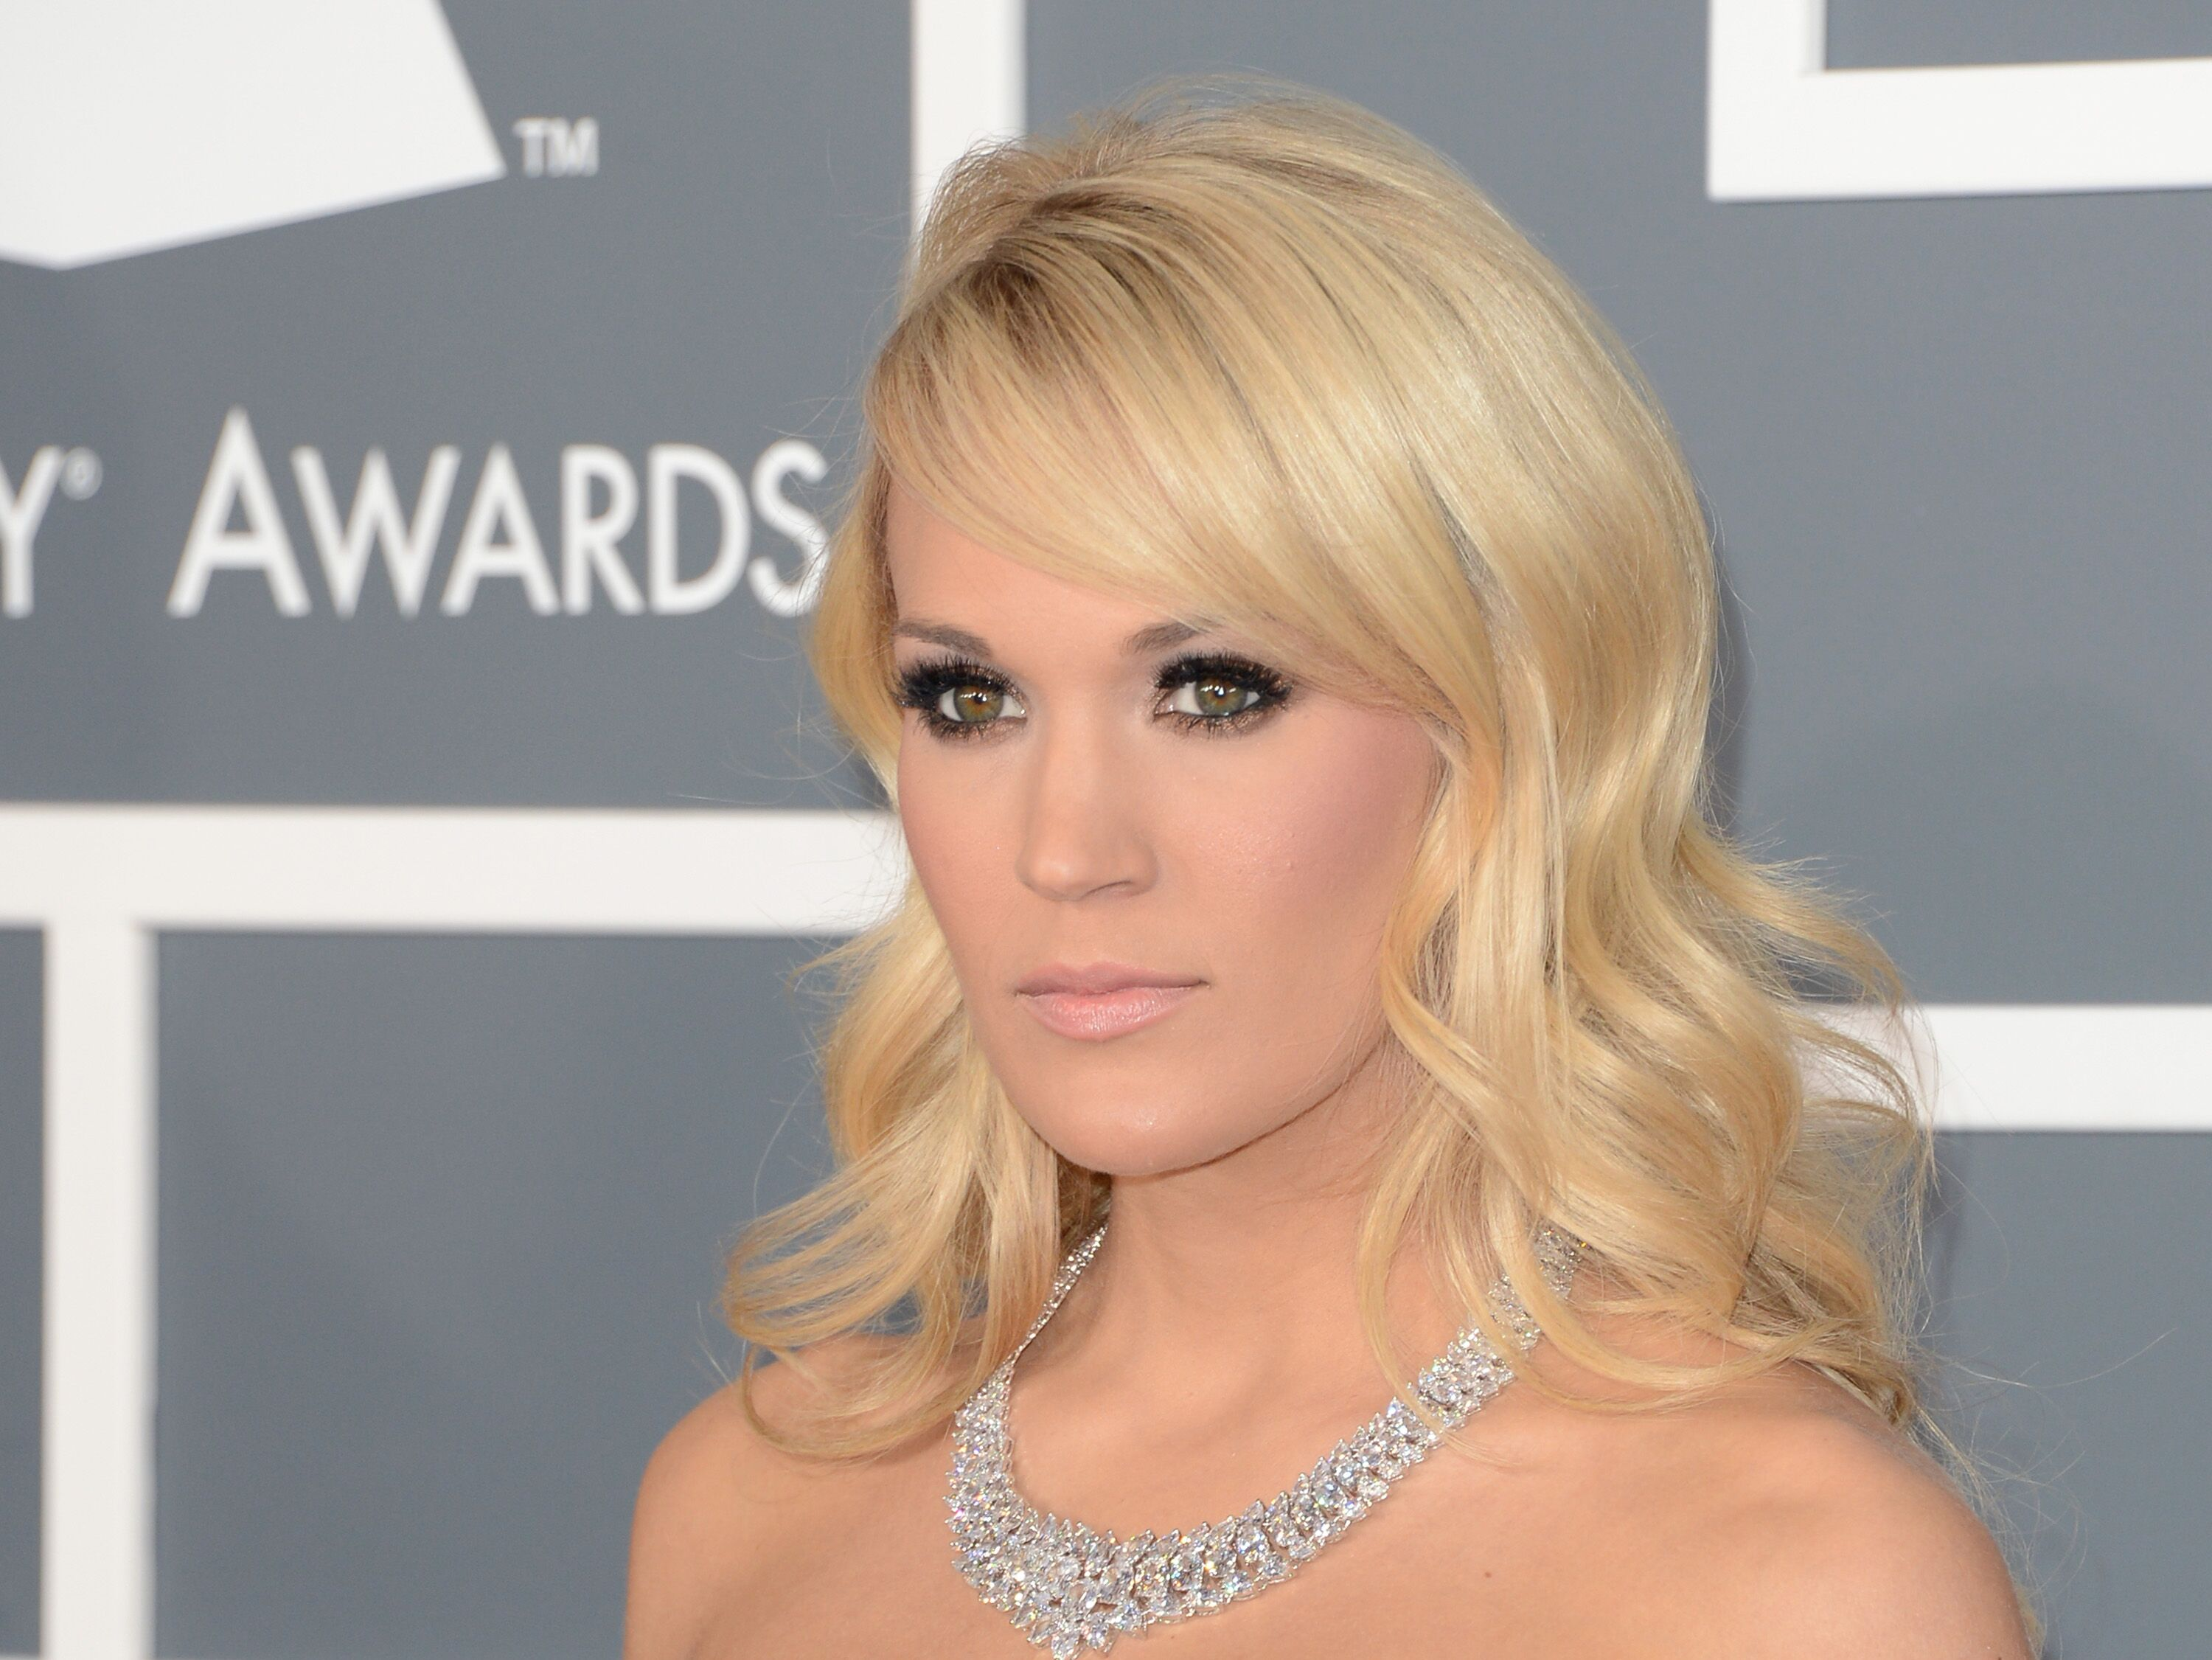 Carrie Underwood arrives at the 55th Annual GRAMMY Awards at Staples Center on February 10, 2013 in Los Angeles, California | Photo: Getty Images